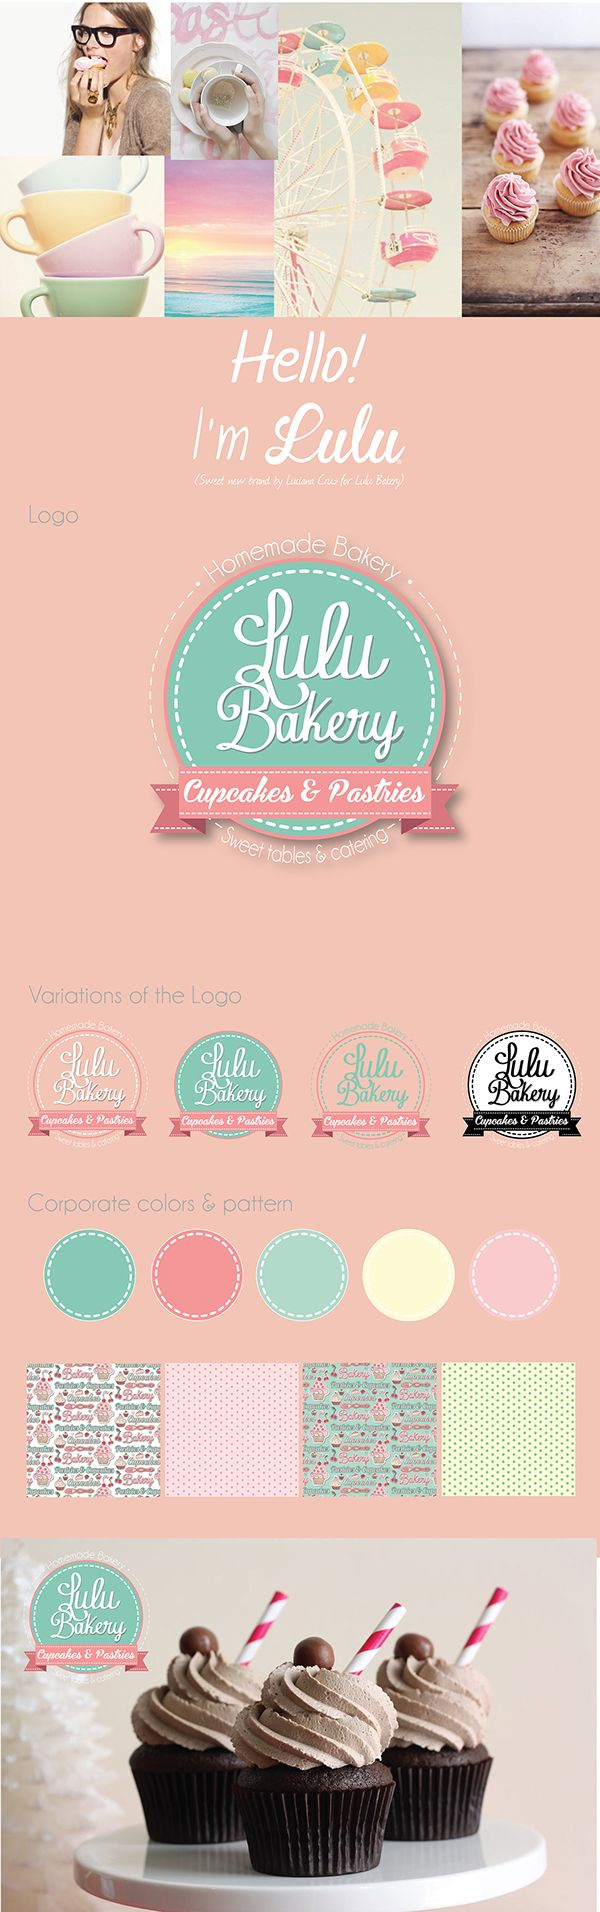 lulu bakery beautiful cupcakes sweet tables small business prides